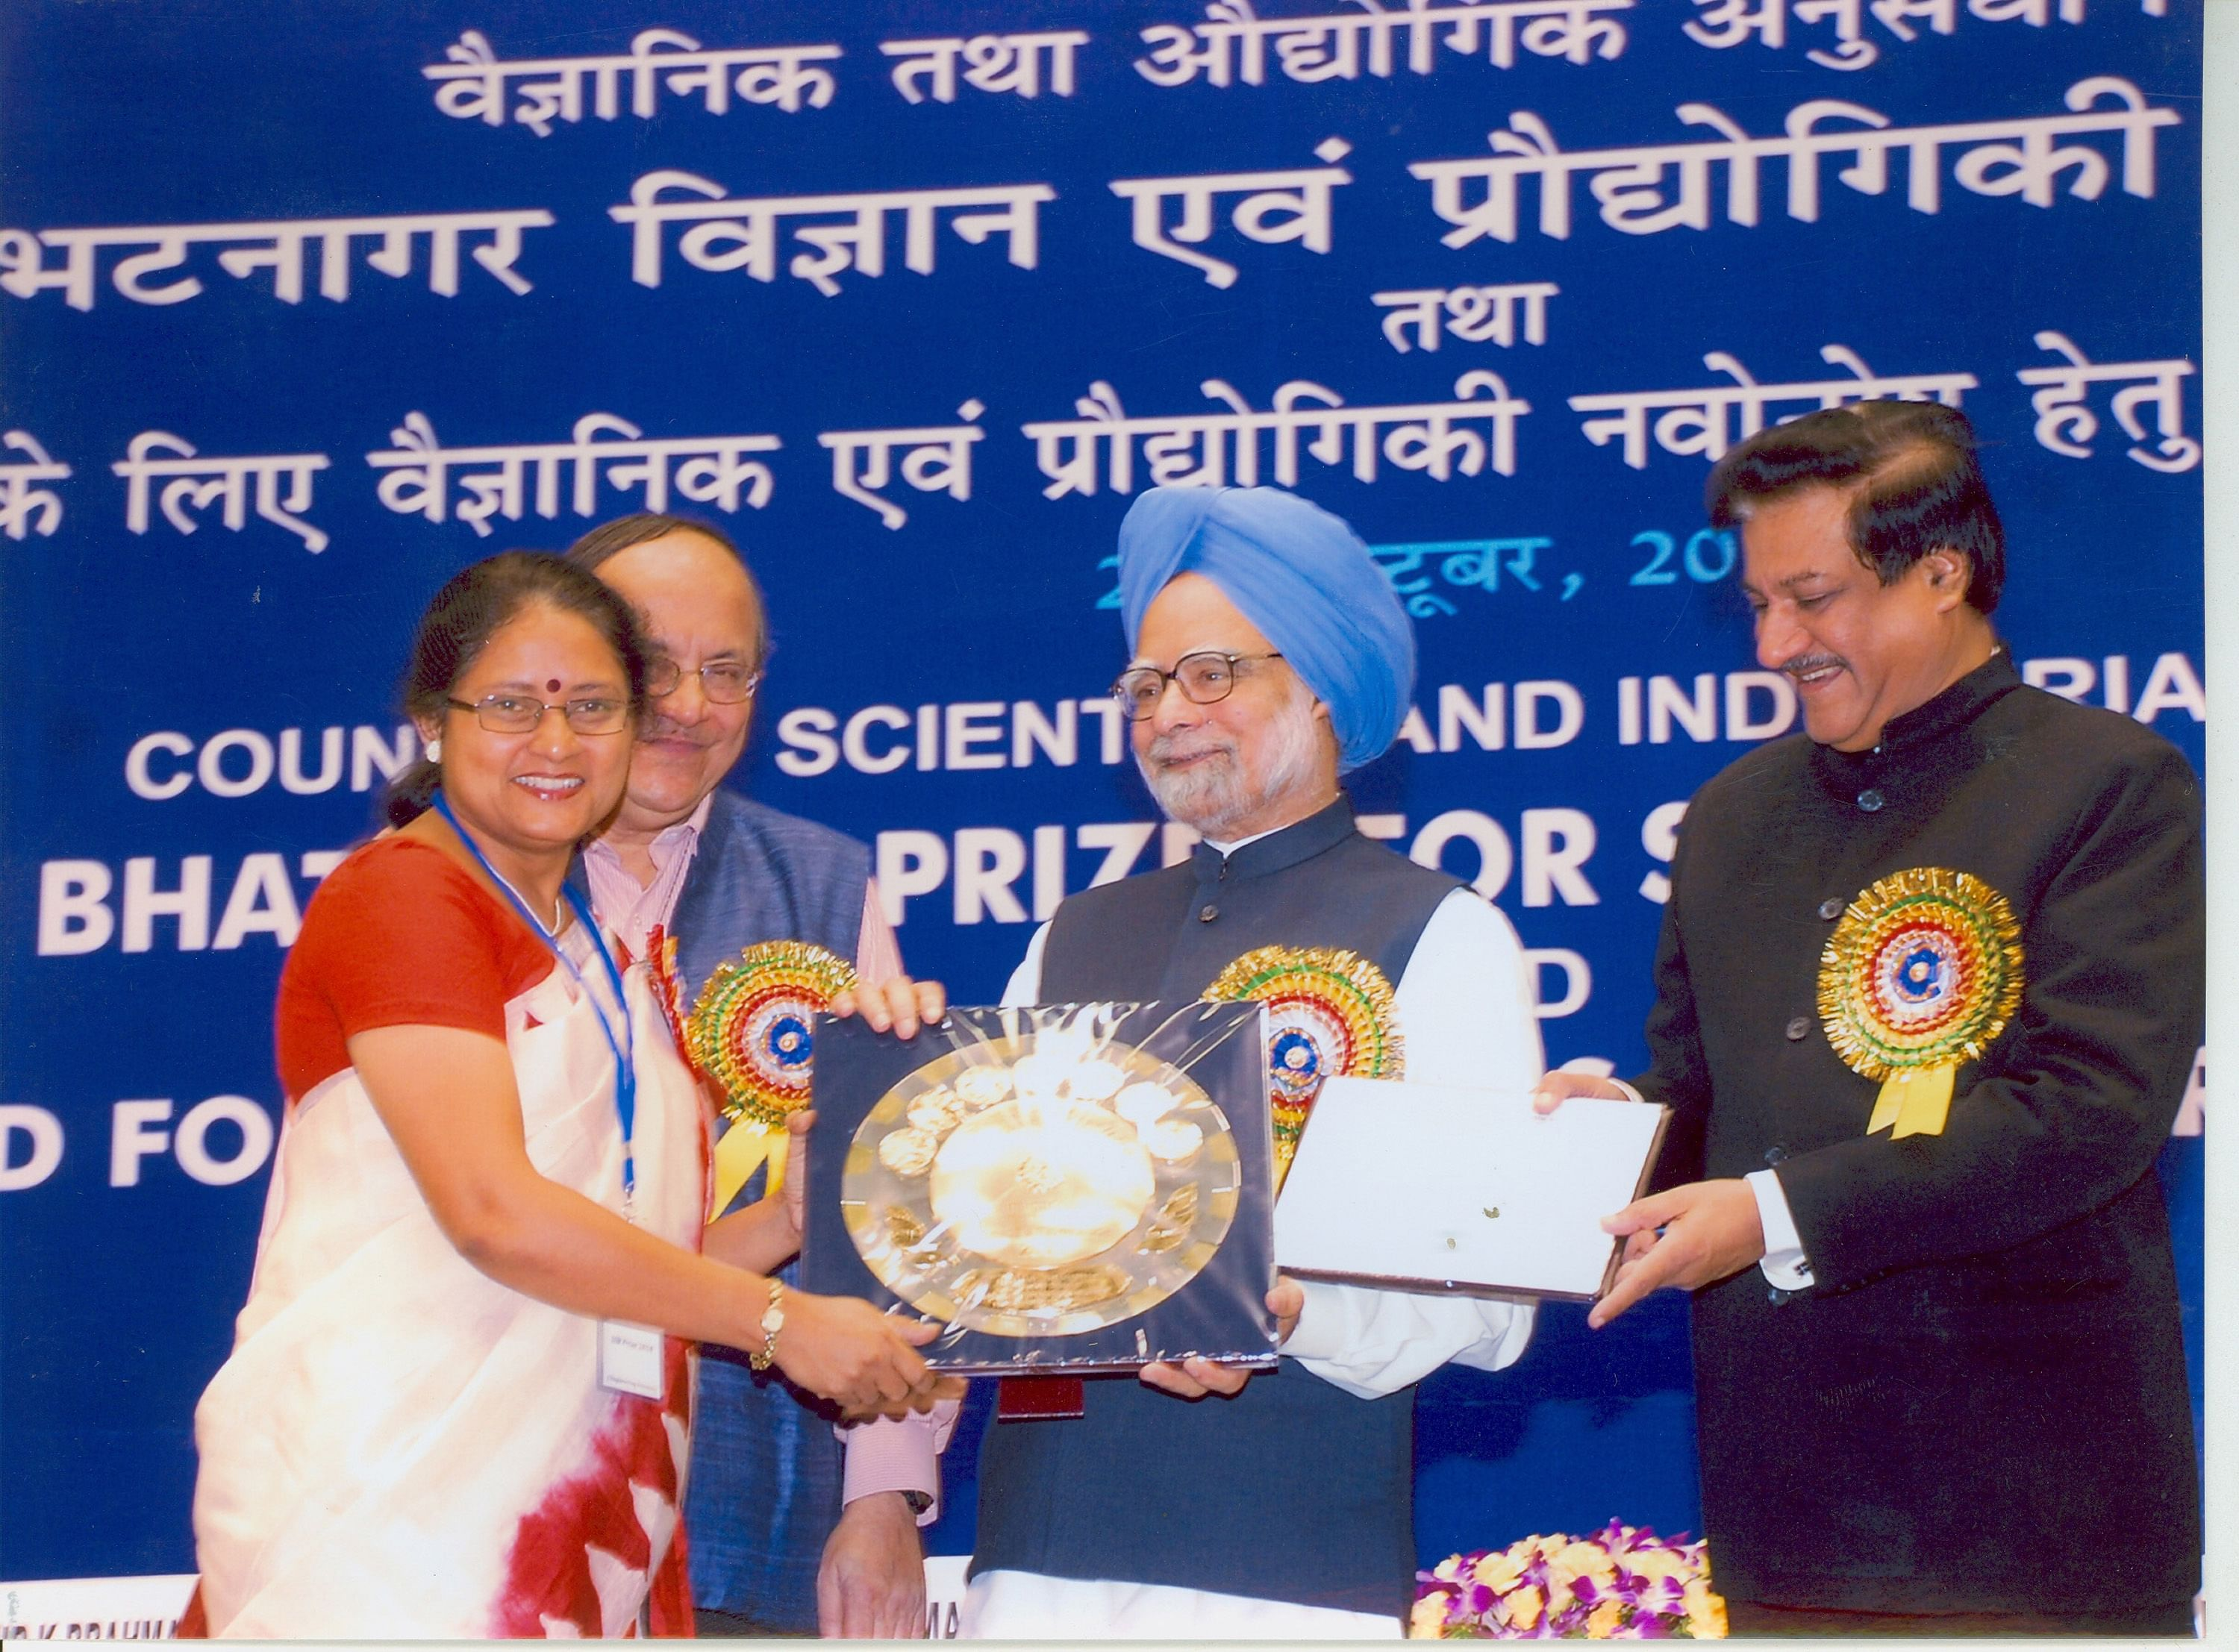 Sanghamitra Bandyopadhyay receiving the Shanti Swarup Bhatnagar Prize for 2010